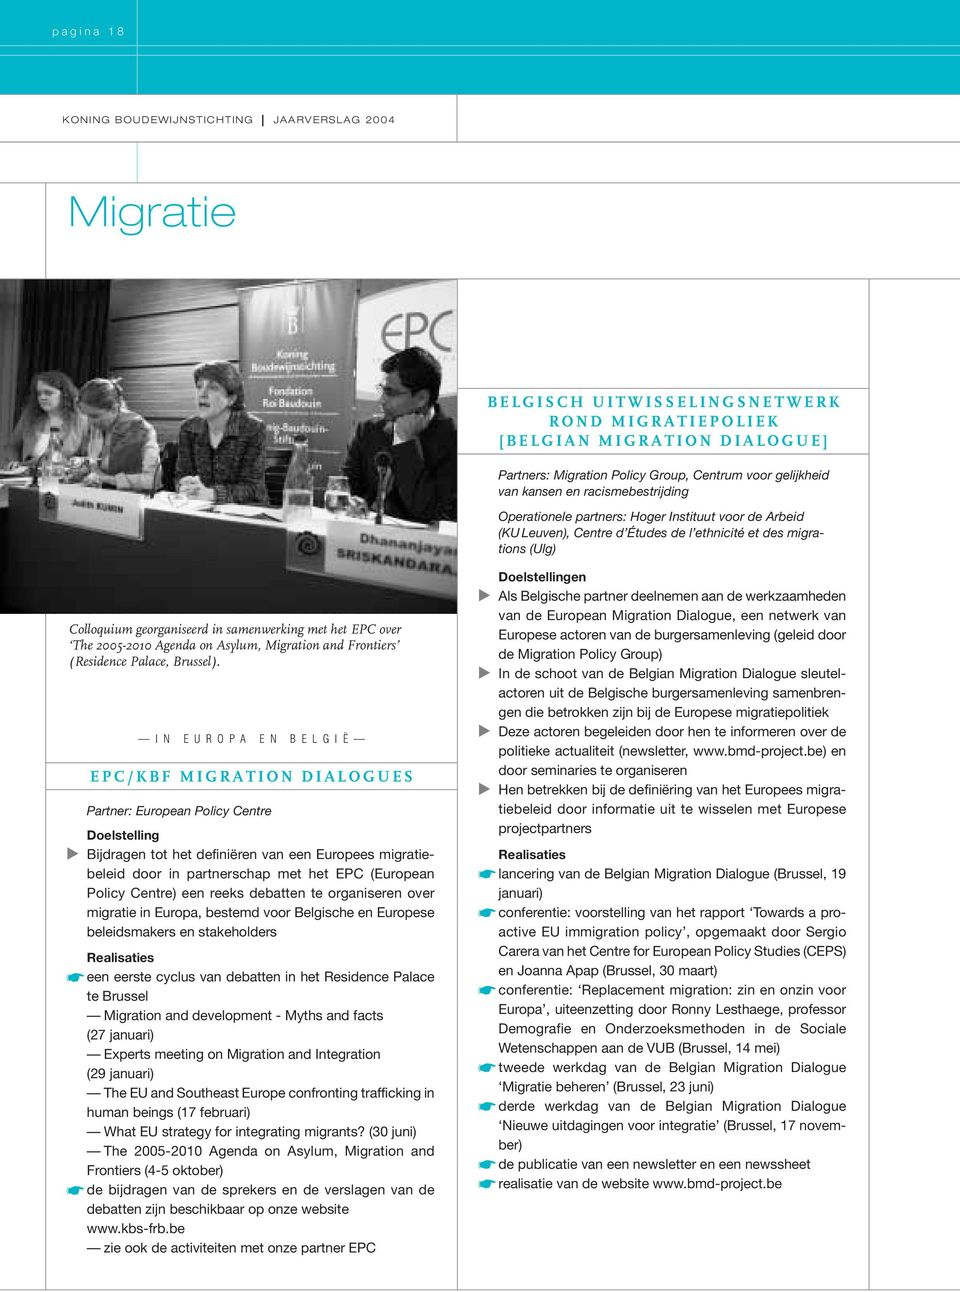 samenwerking met het EPC over The 2005-2010 Agenda on Asylum, Migration and Frontiers (Residence Palace, Brussel).